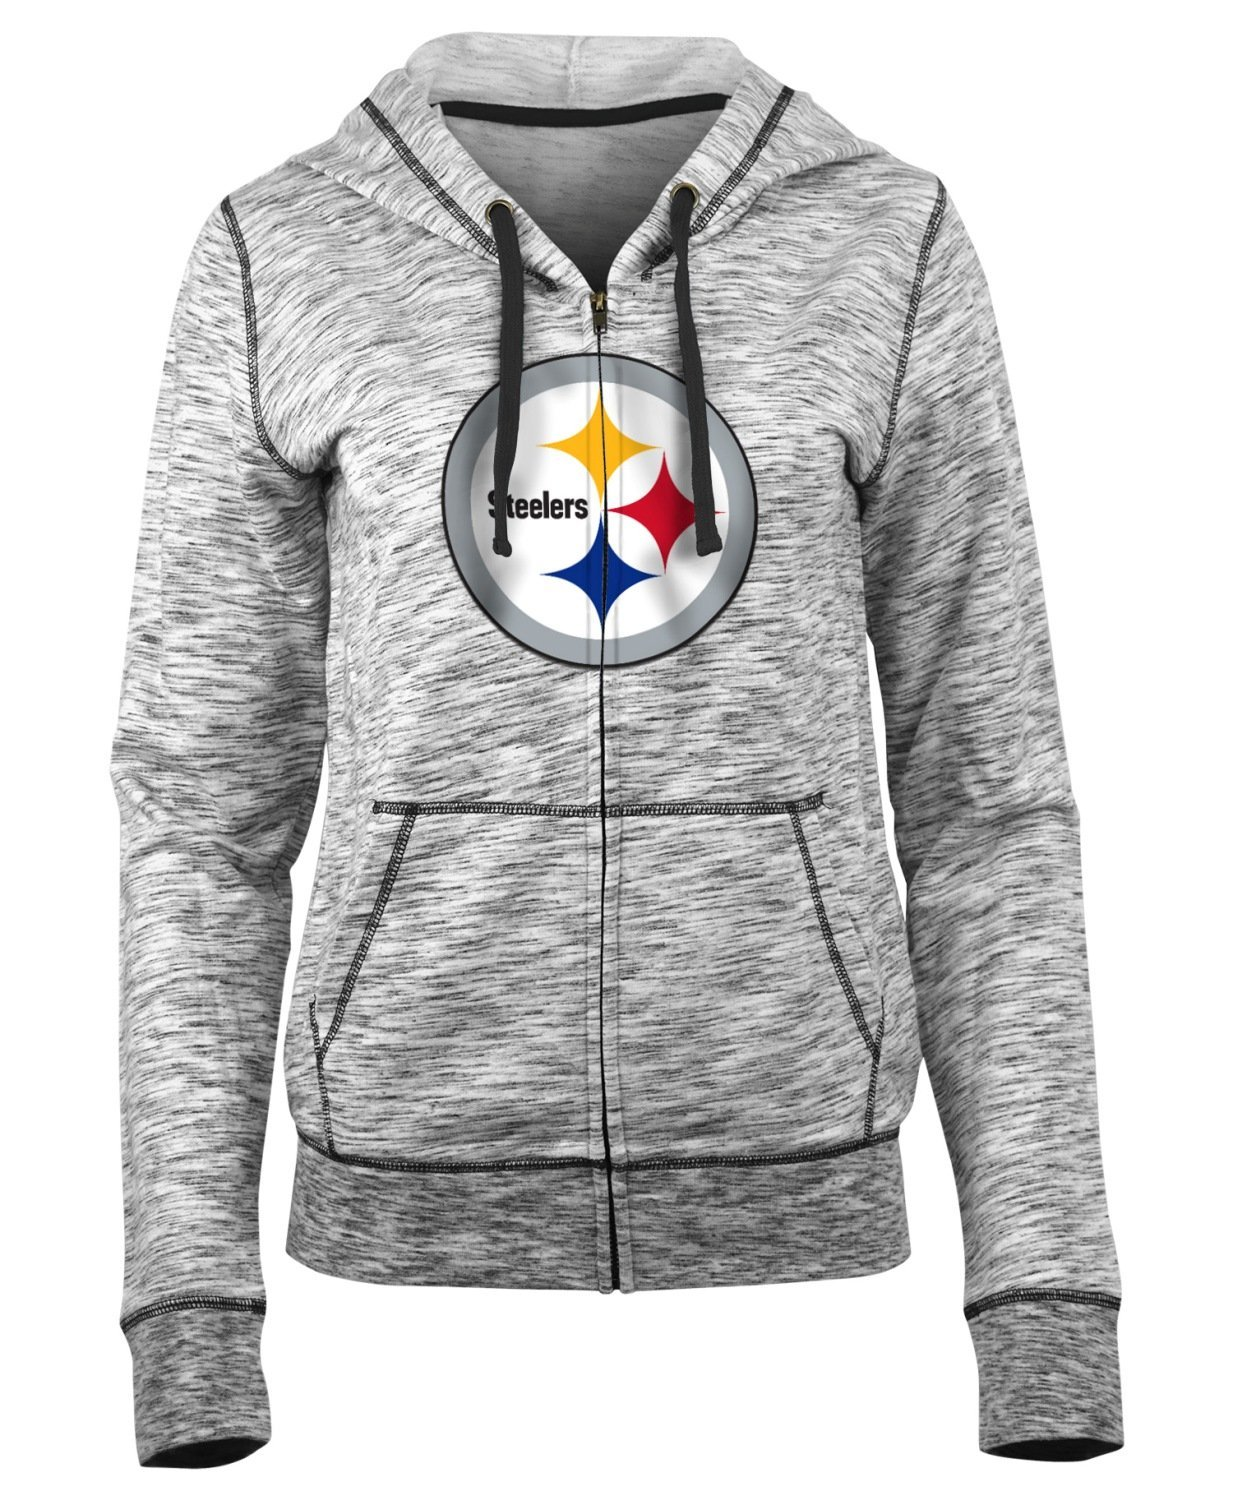 New Era Pittsburgh Steelers Women 's NFL Defense Space Dyeフード付きスウェットシャツ Small  B07DPT2V6C